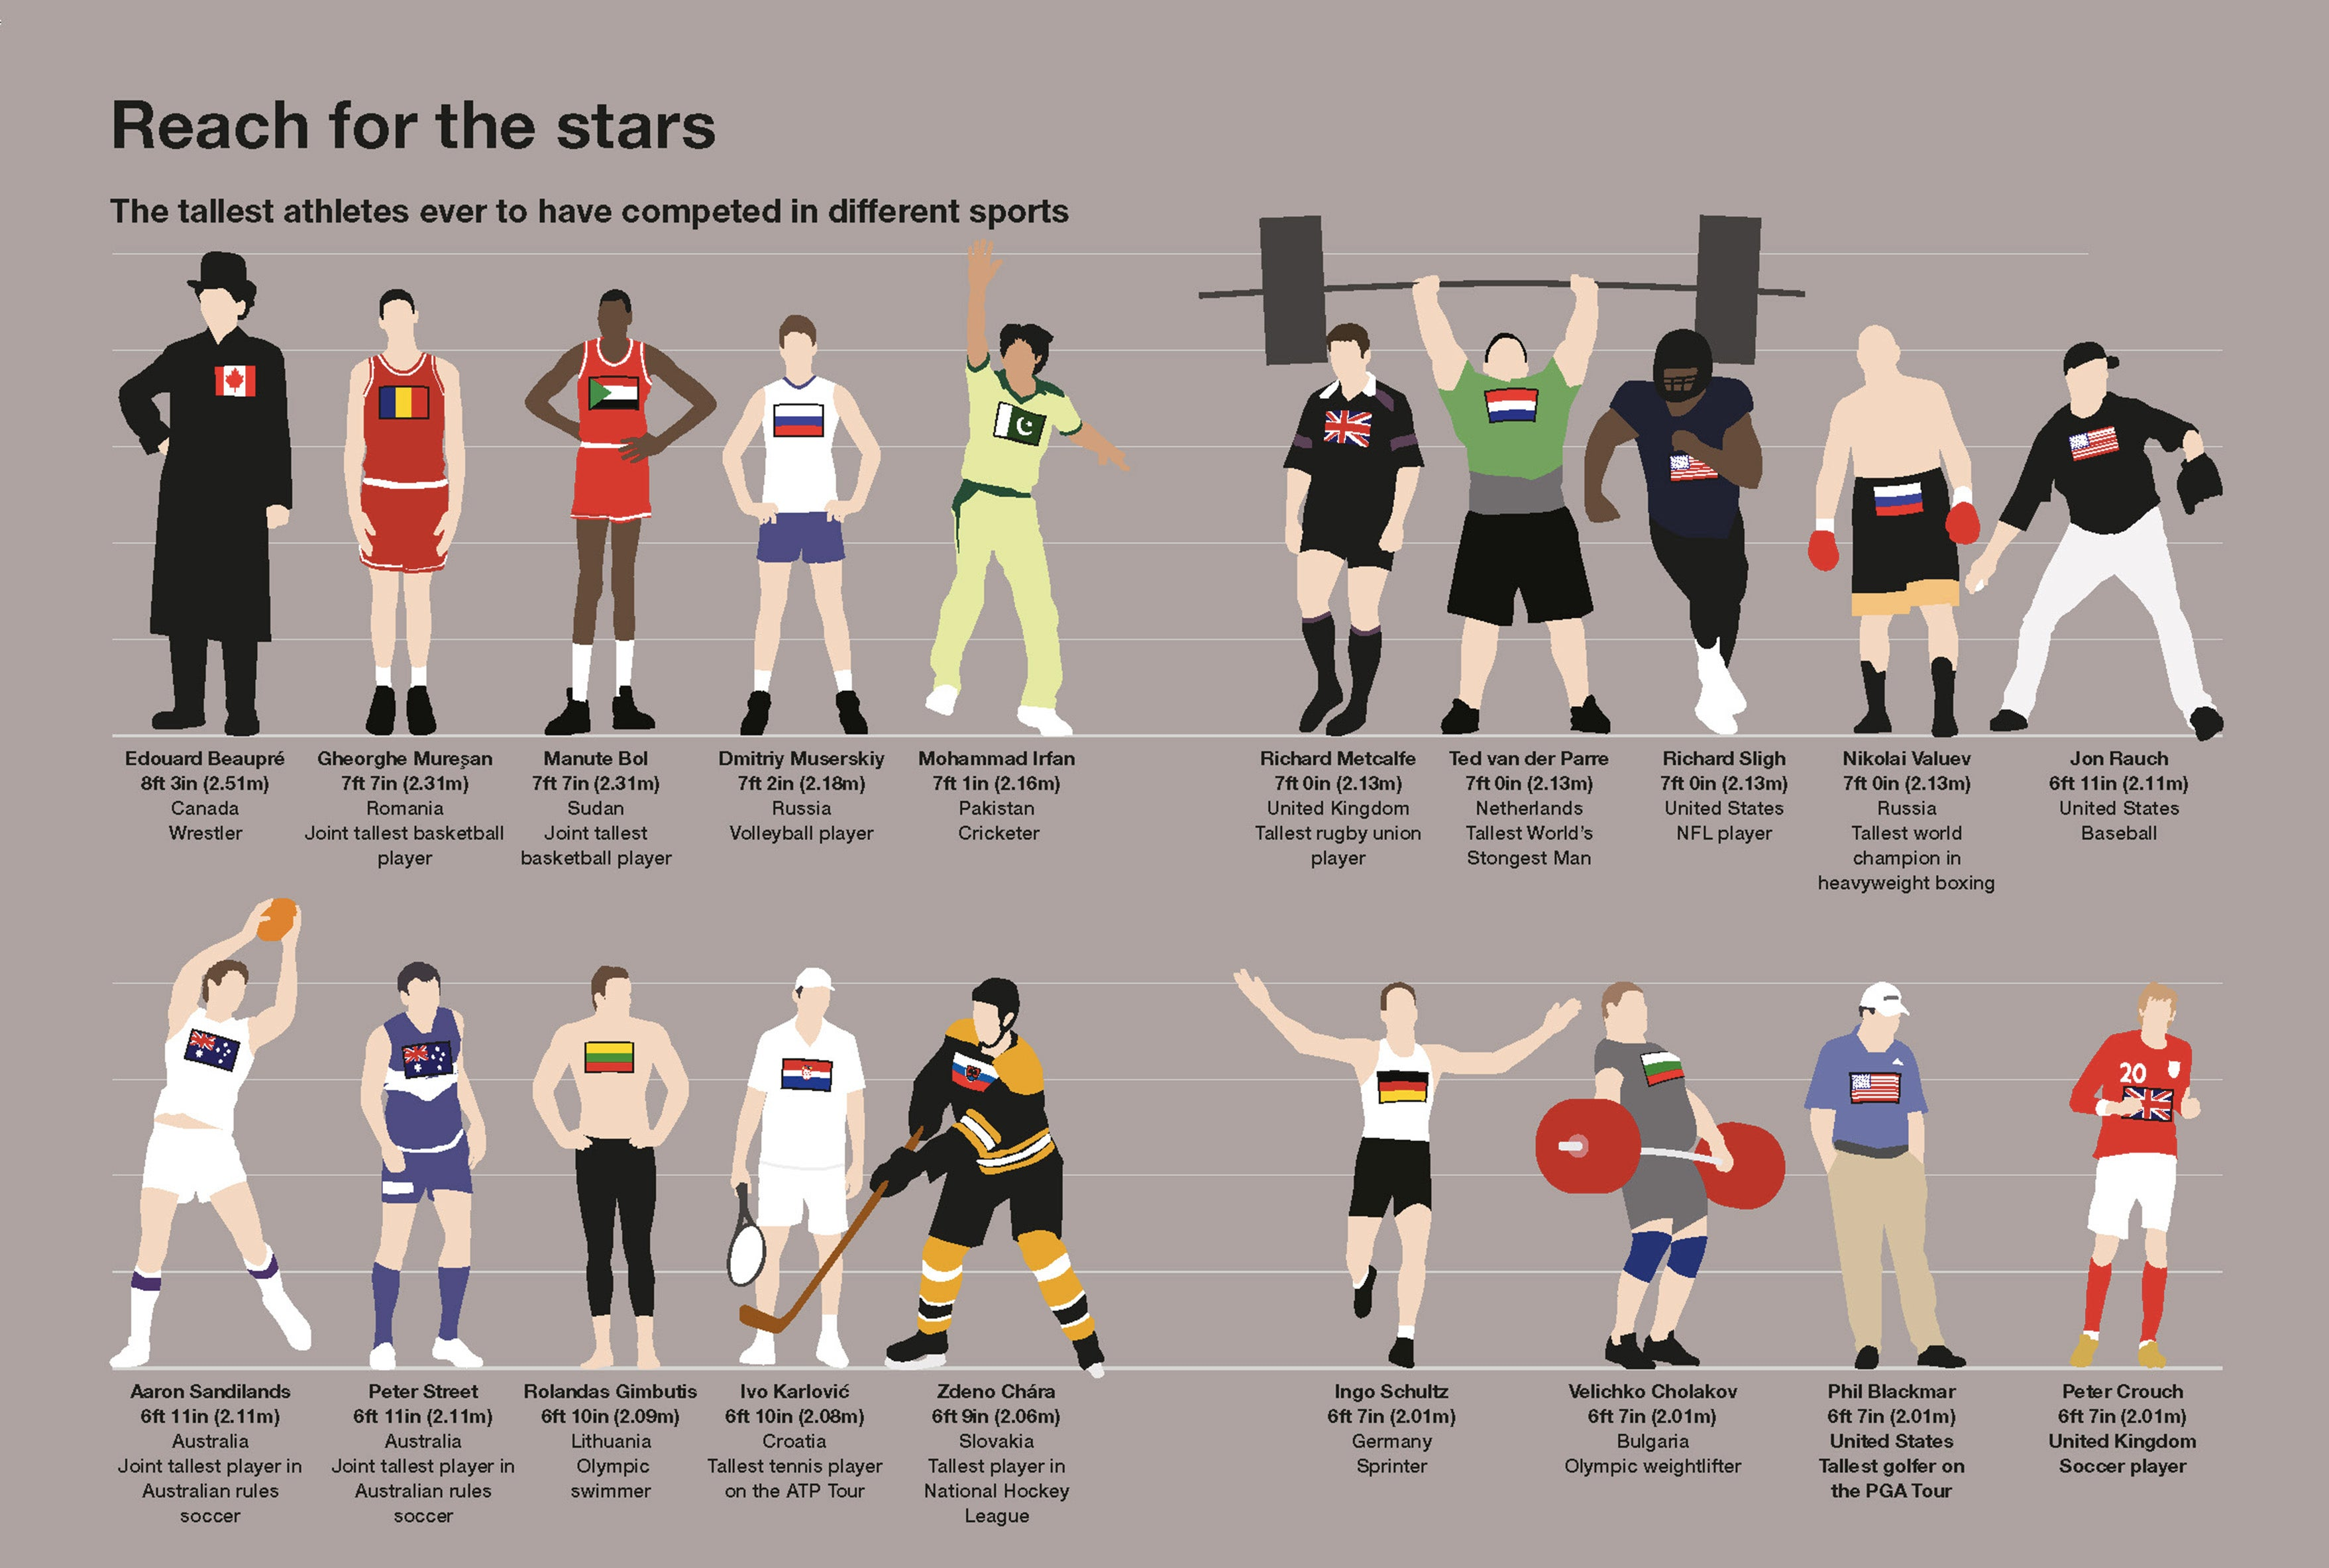 All sports players